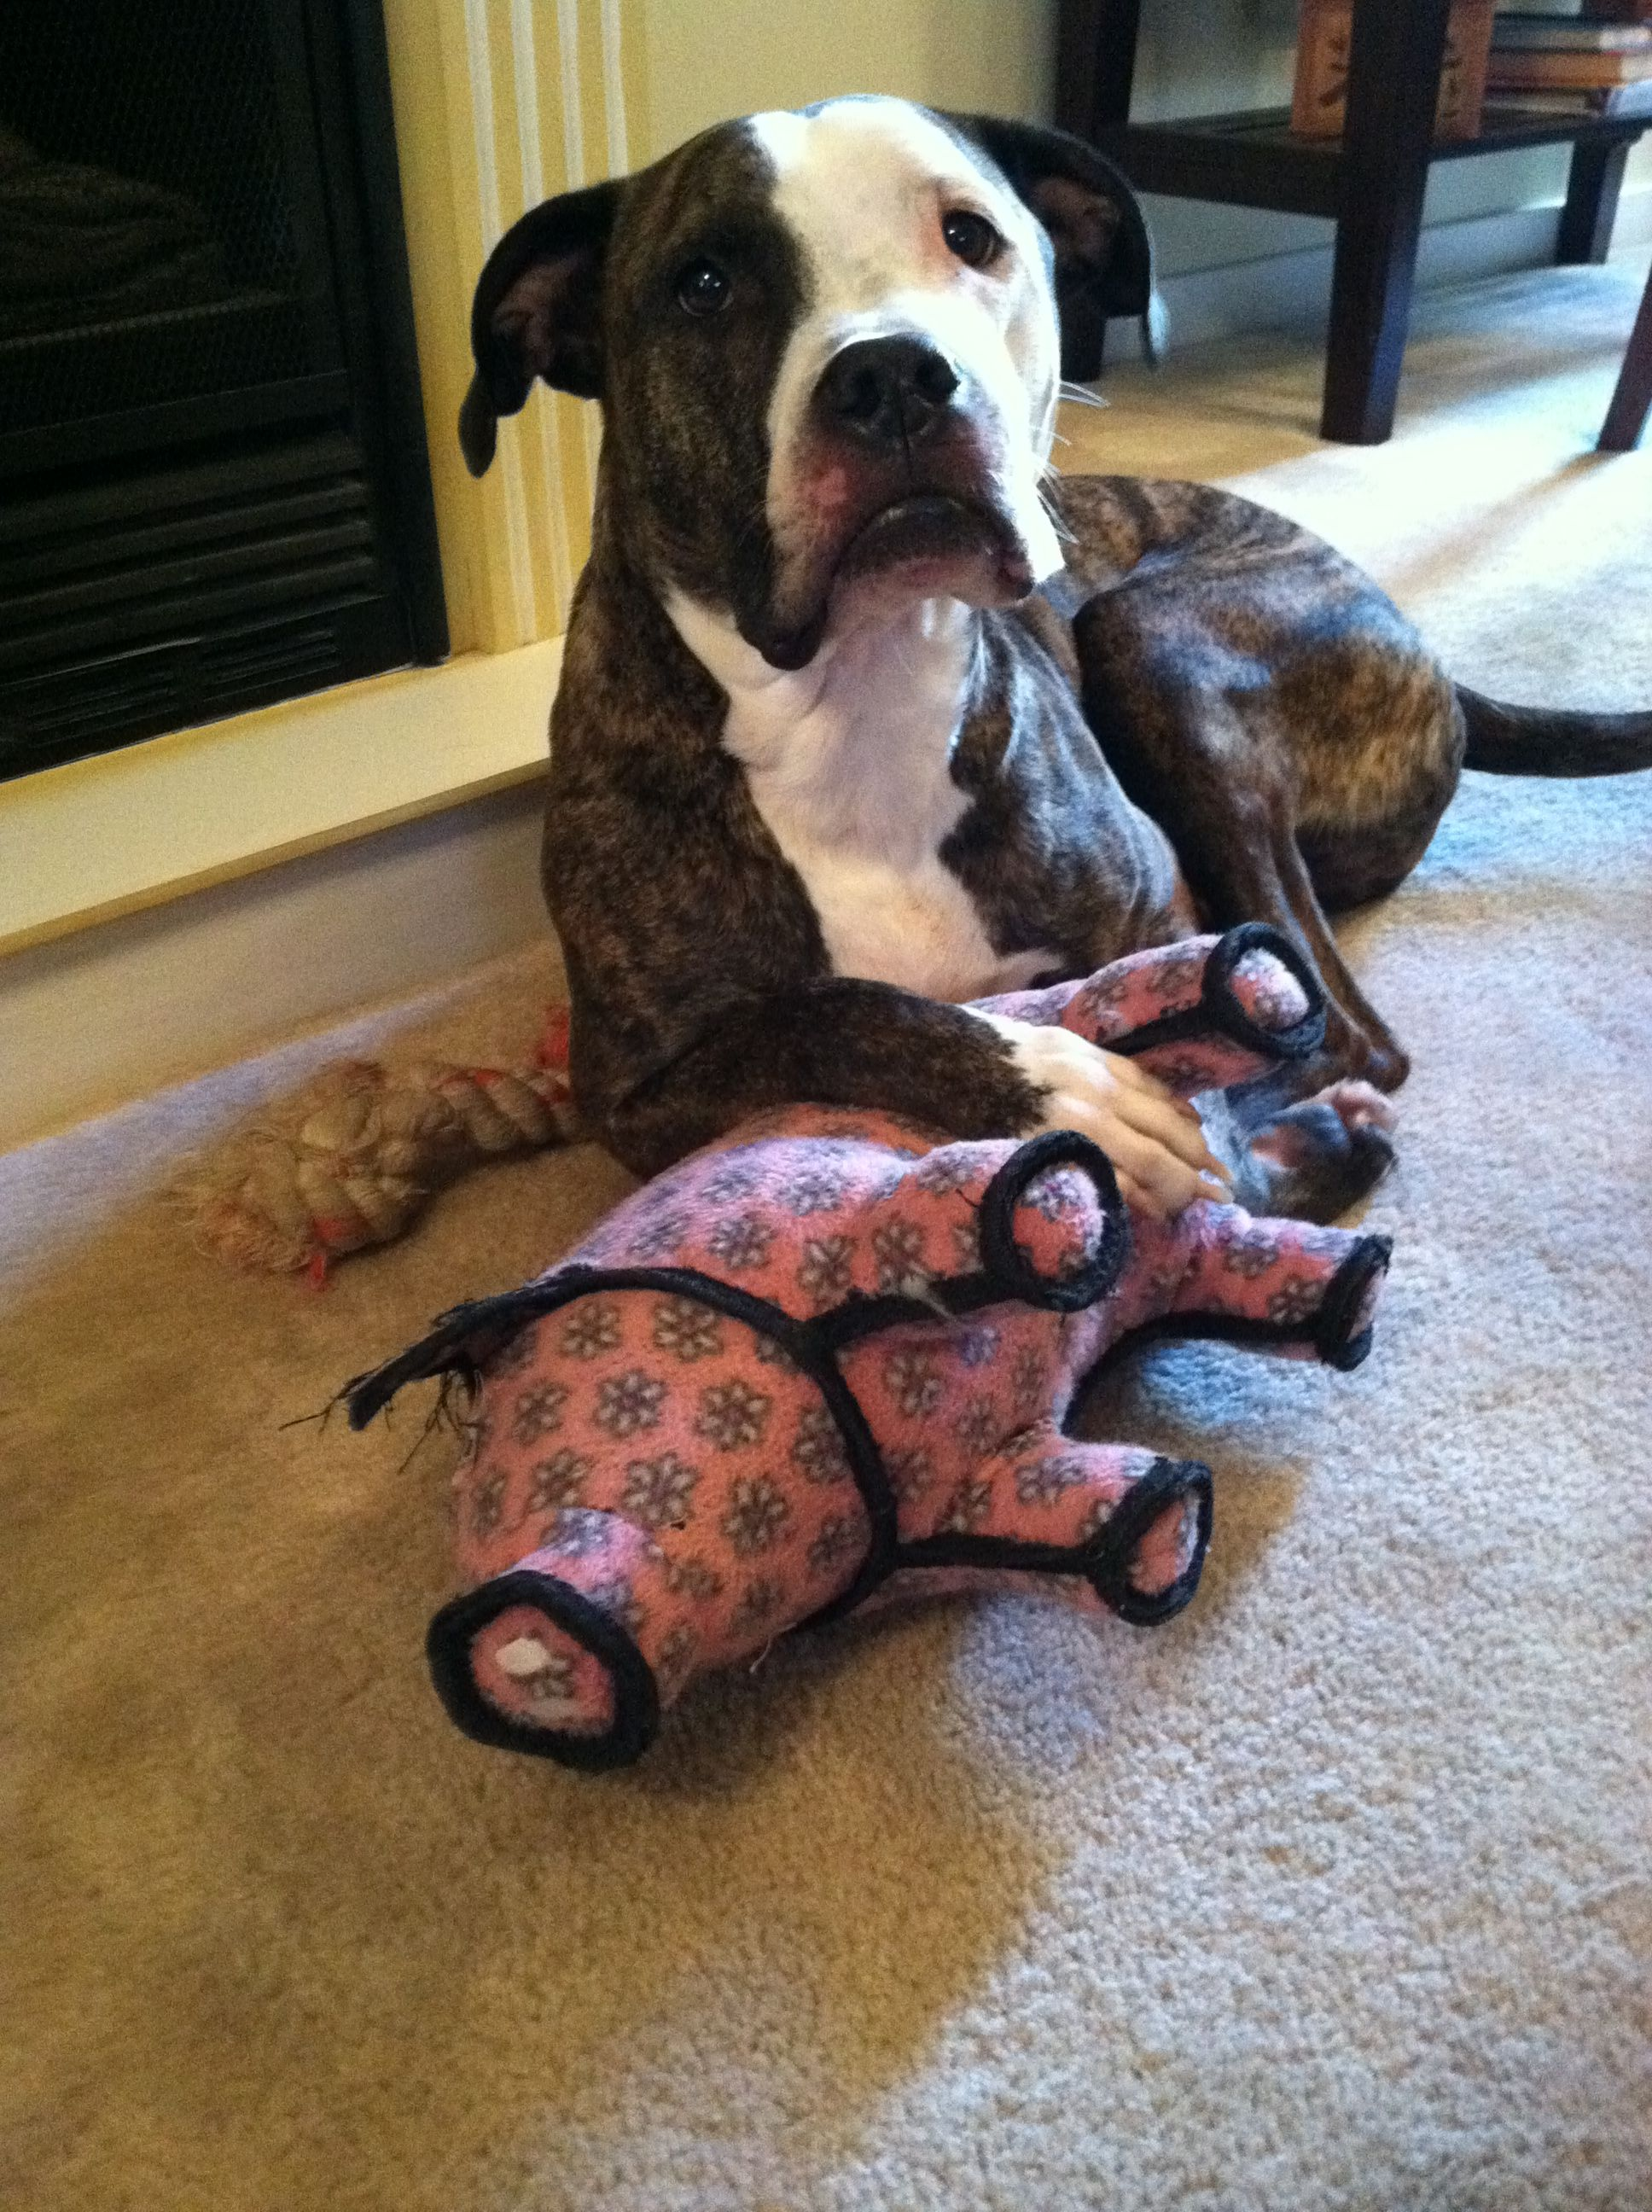 Buster Brown My Shelterdog Pitbull With His Toy Pig Shelter Dogs Dogs I Love Cats